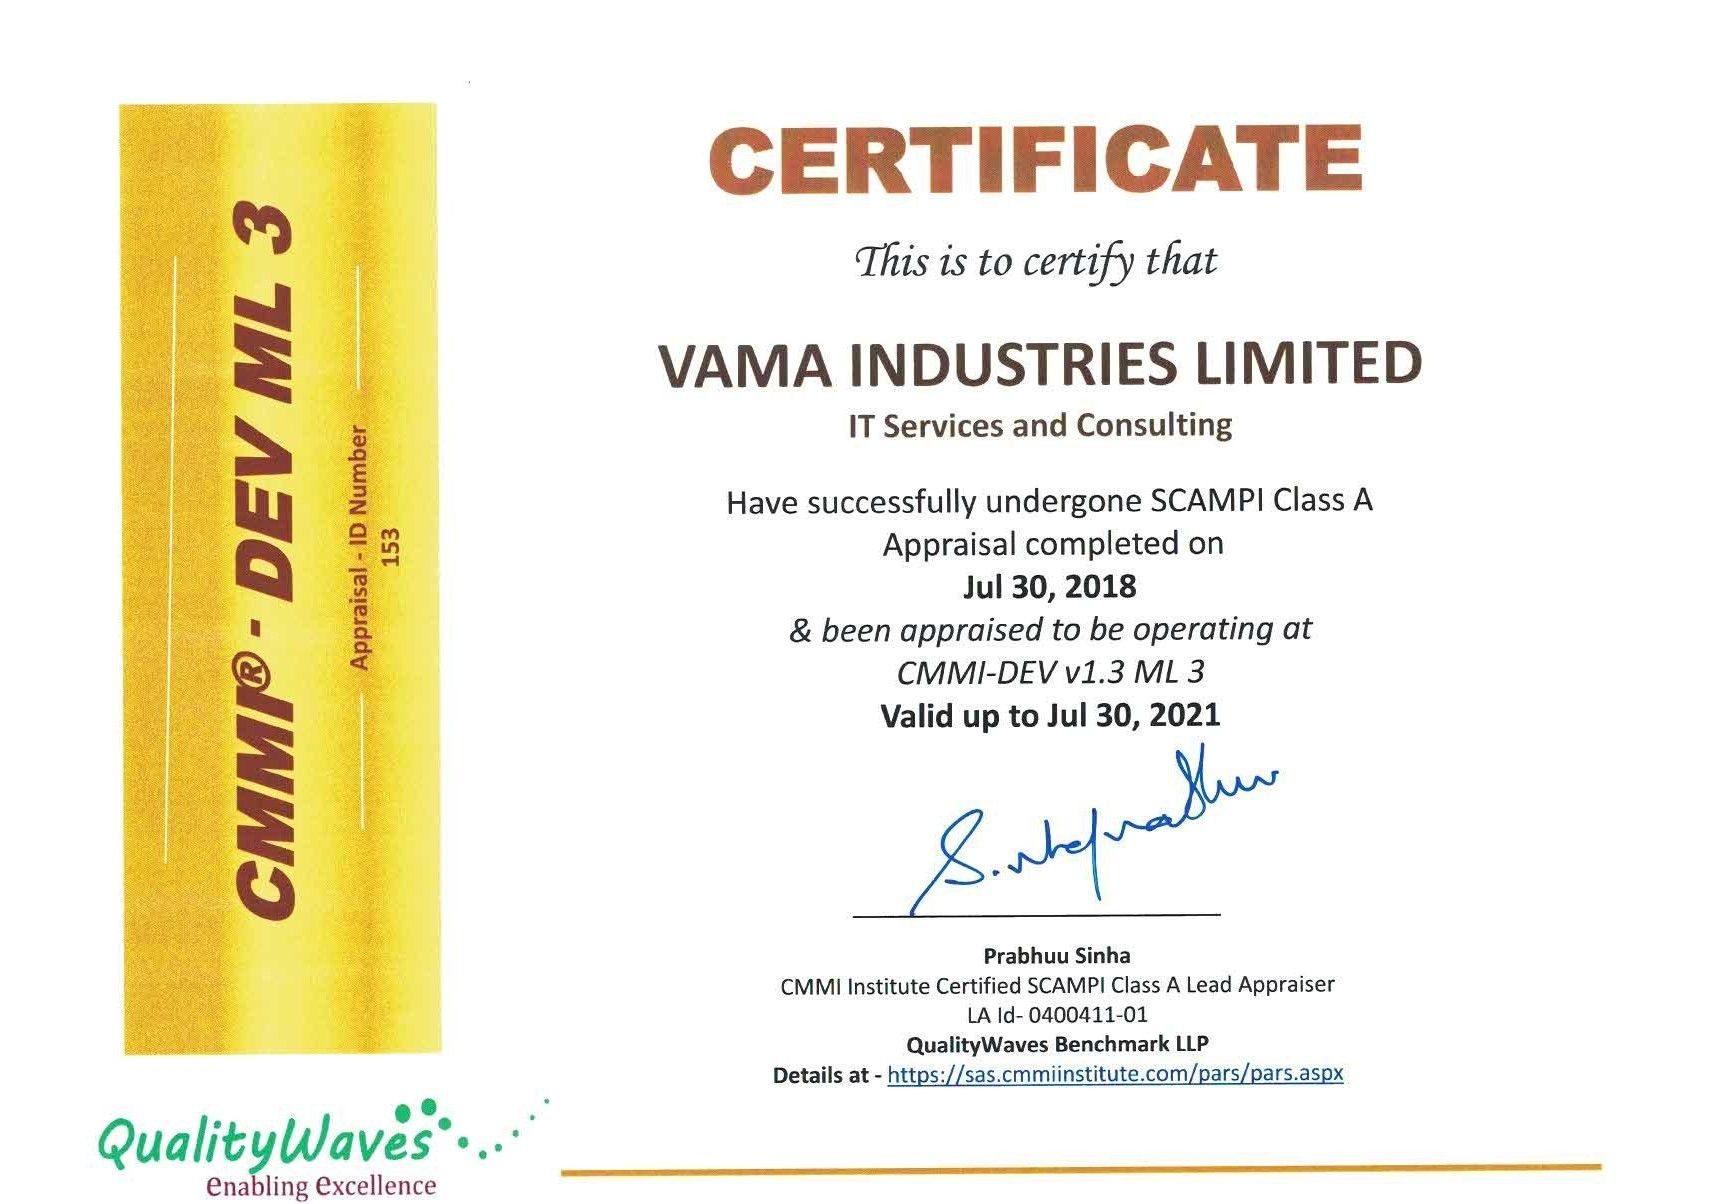 VAMA Industries